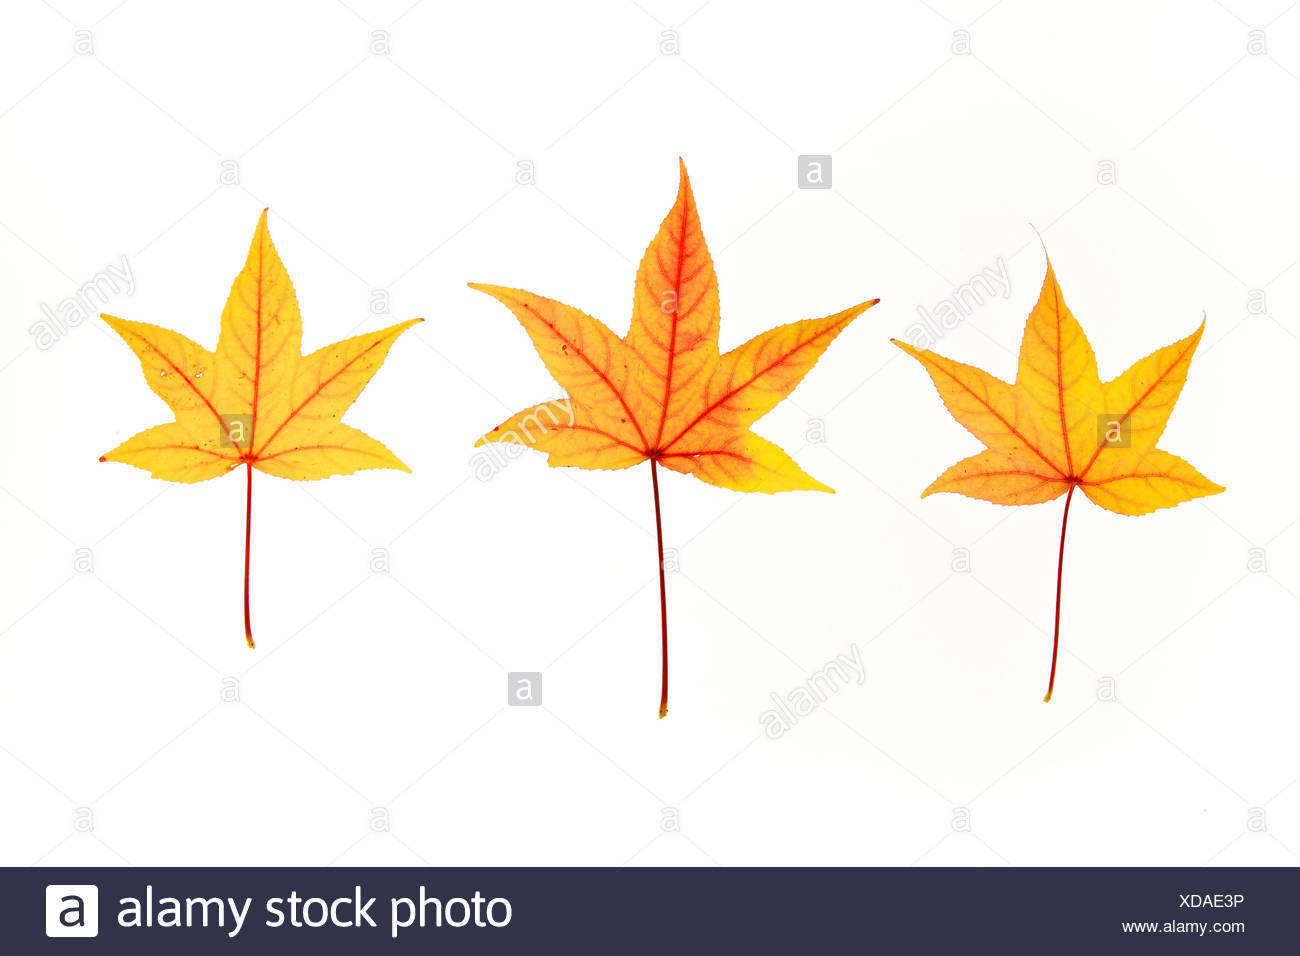 Maple, leaf, leaves, detail, isolated, back light, autumn, autumn color, autumn colors, autumn foliage, colouring, background, f Stock Photo